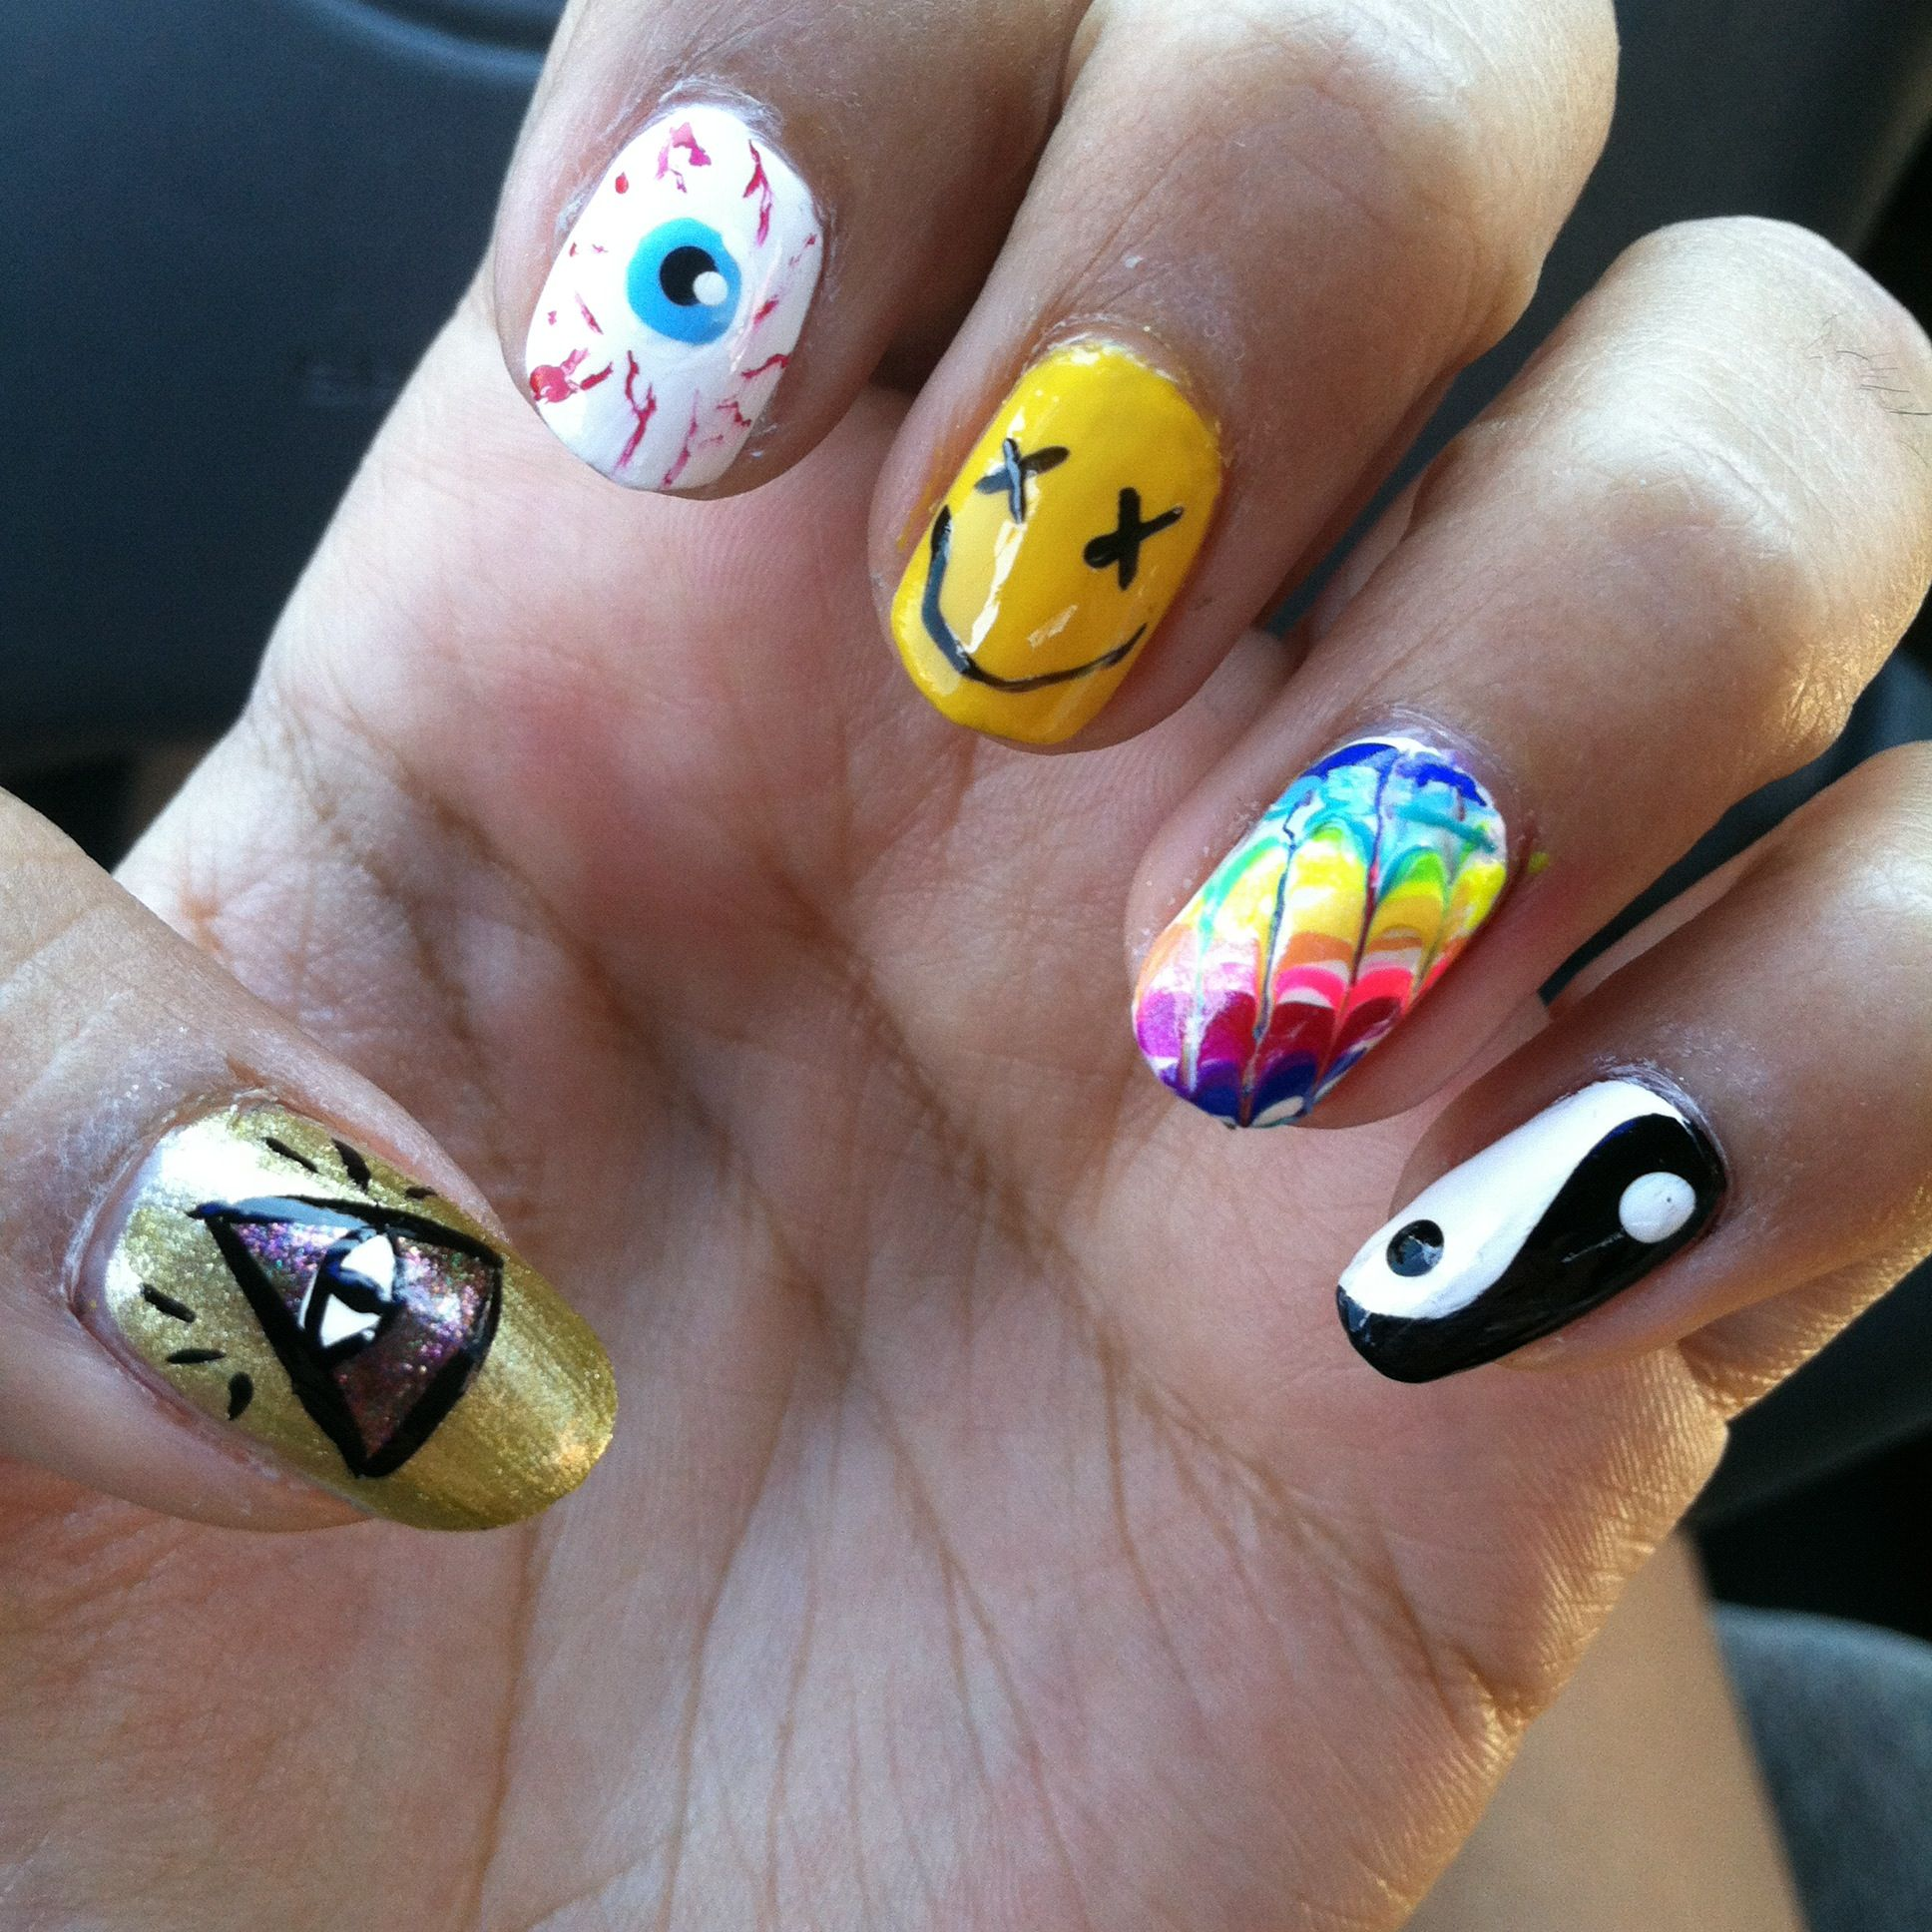 Pin by Charismachancellor on Nails - Nagel | Pinterest | Hair and beauty